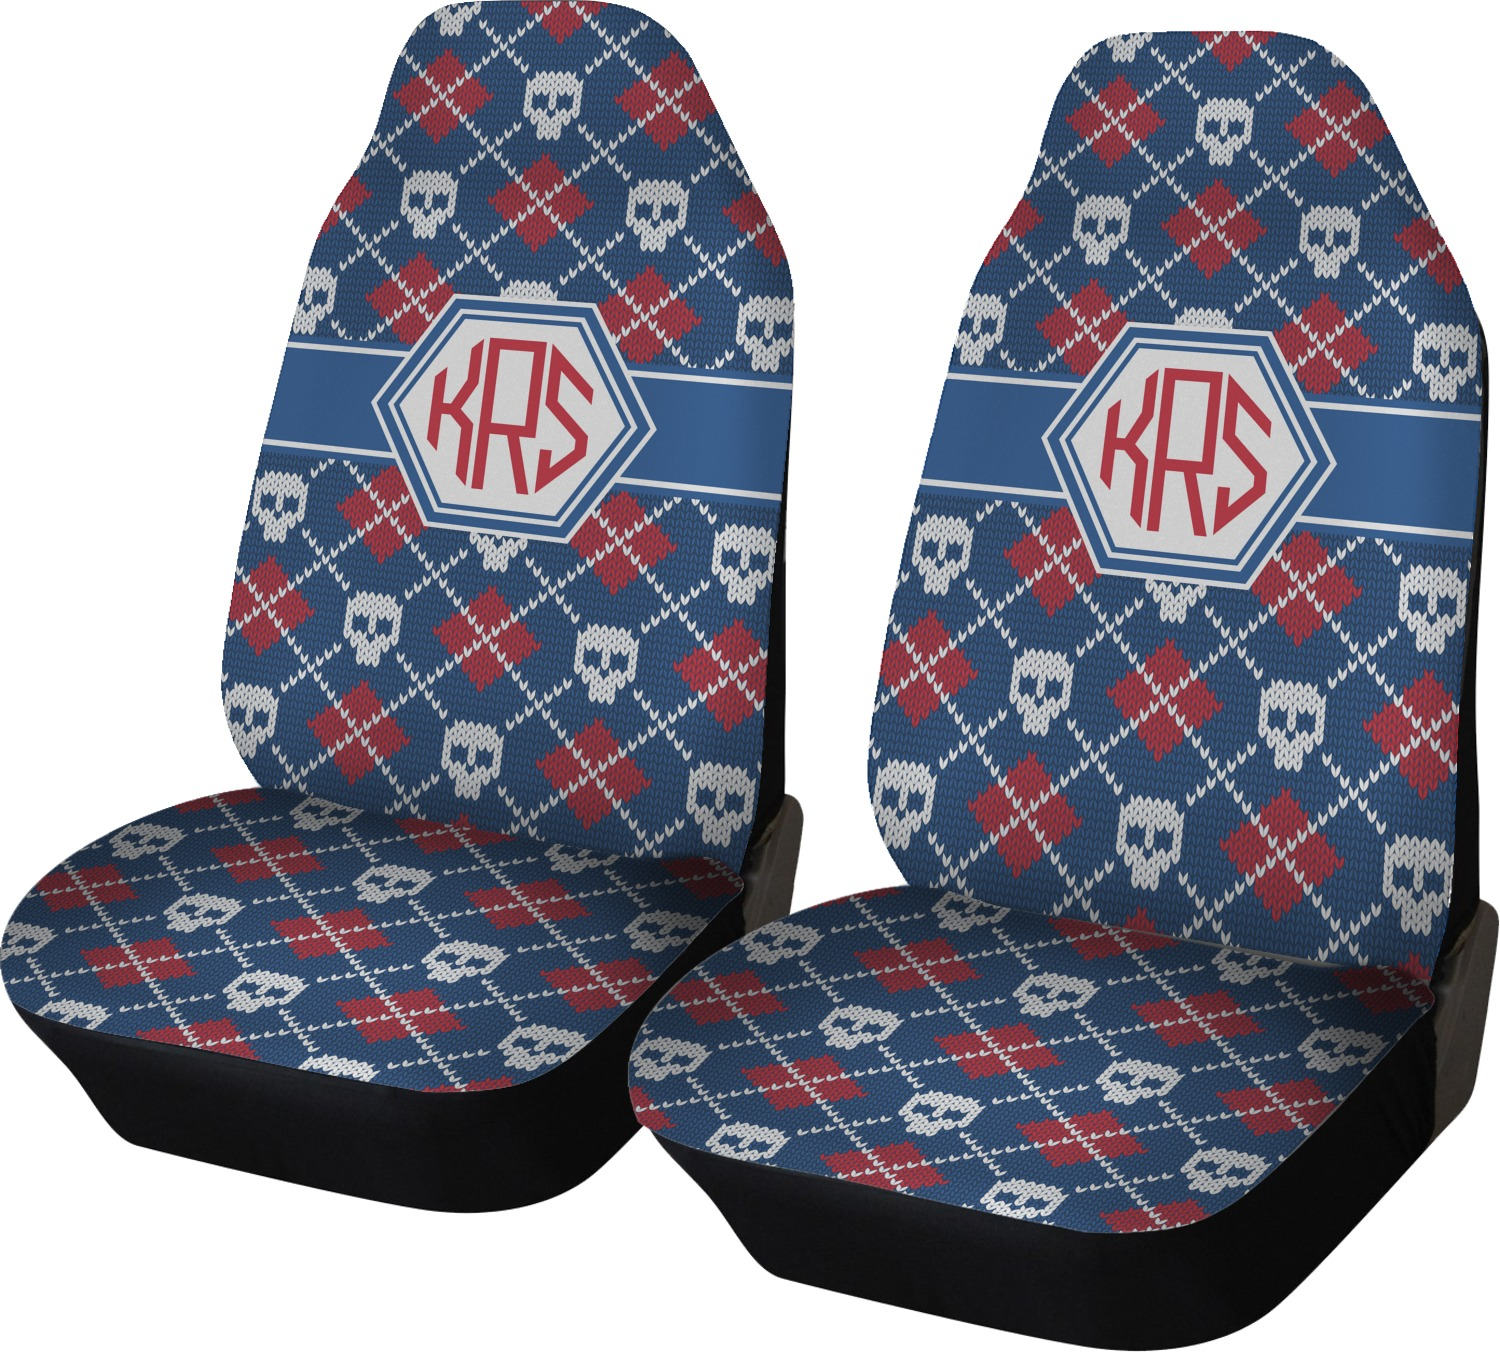 Knitted Argyle Skulls Car Seat Covers Set Of Two Personalized